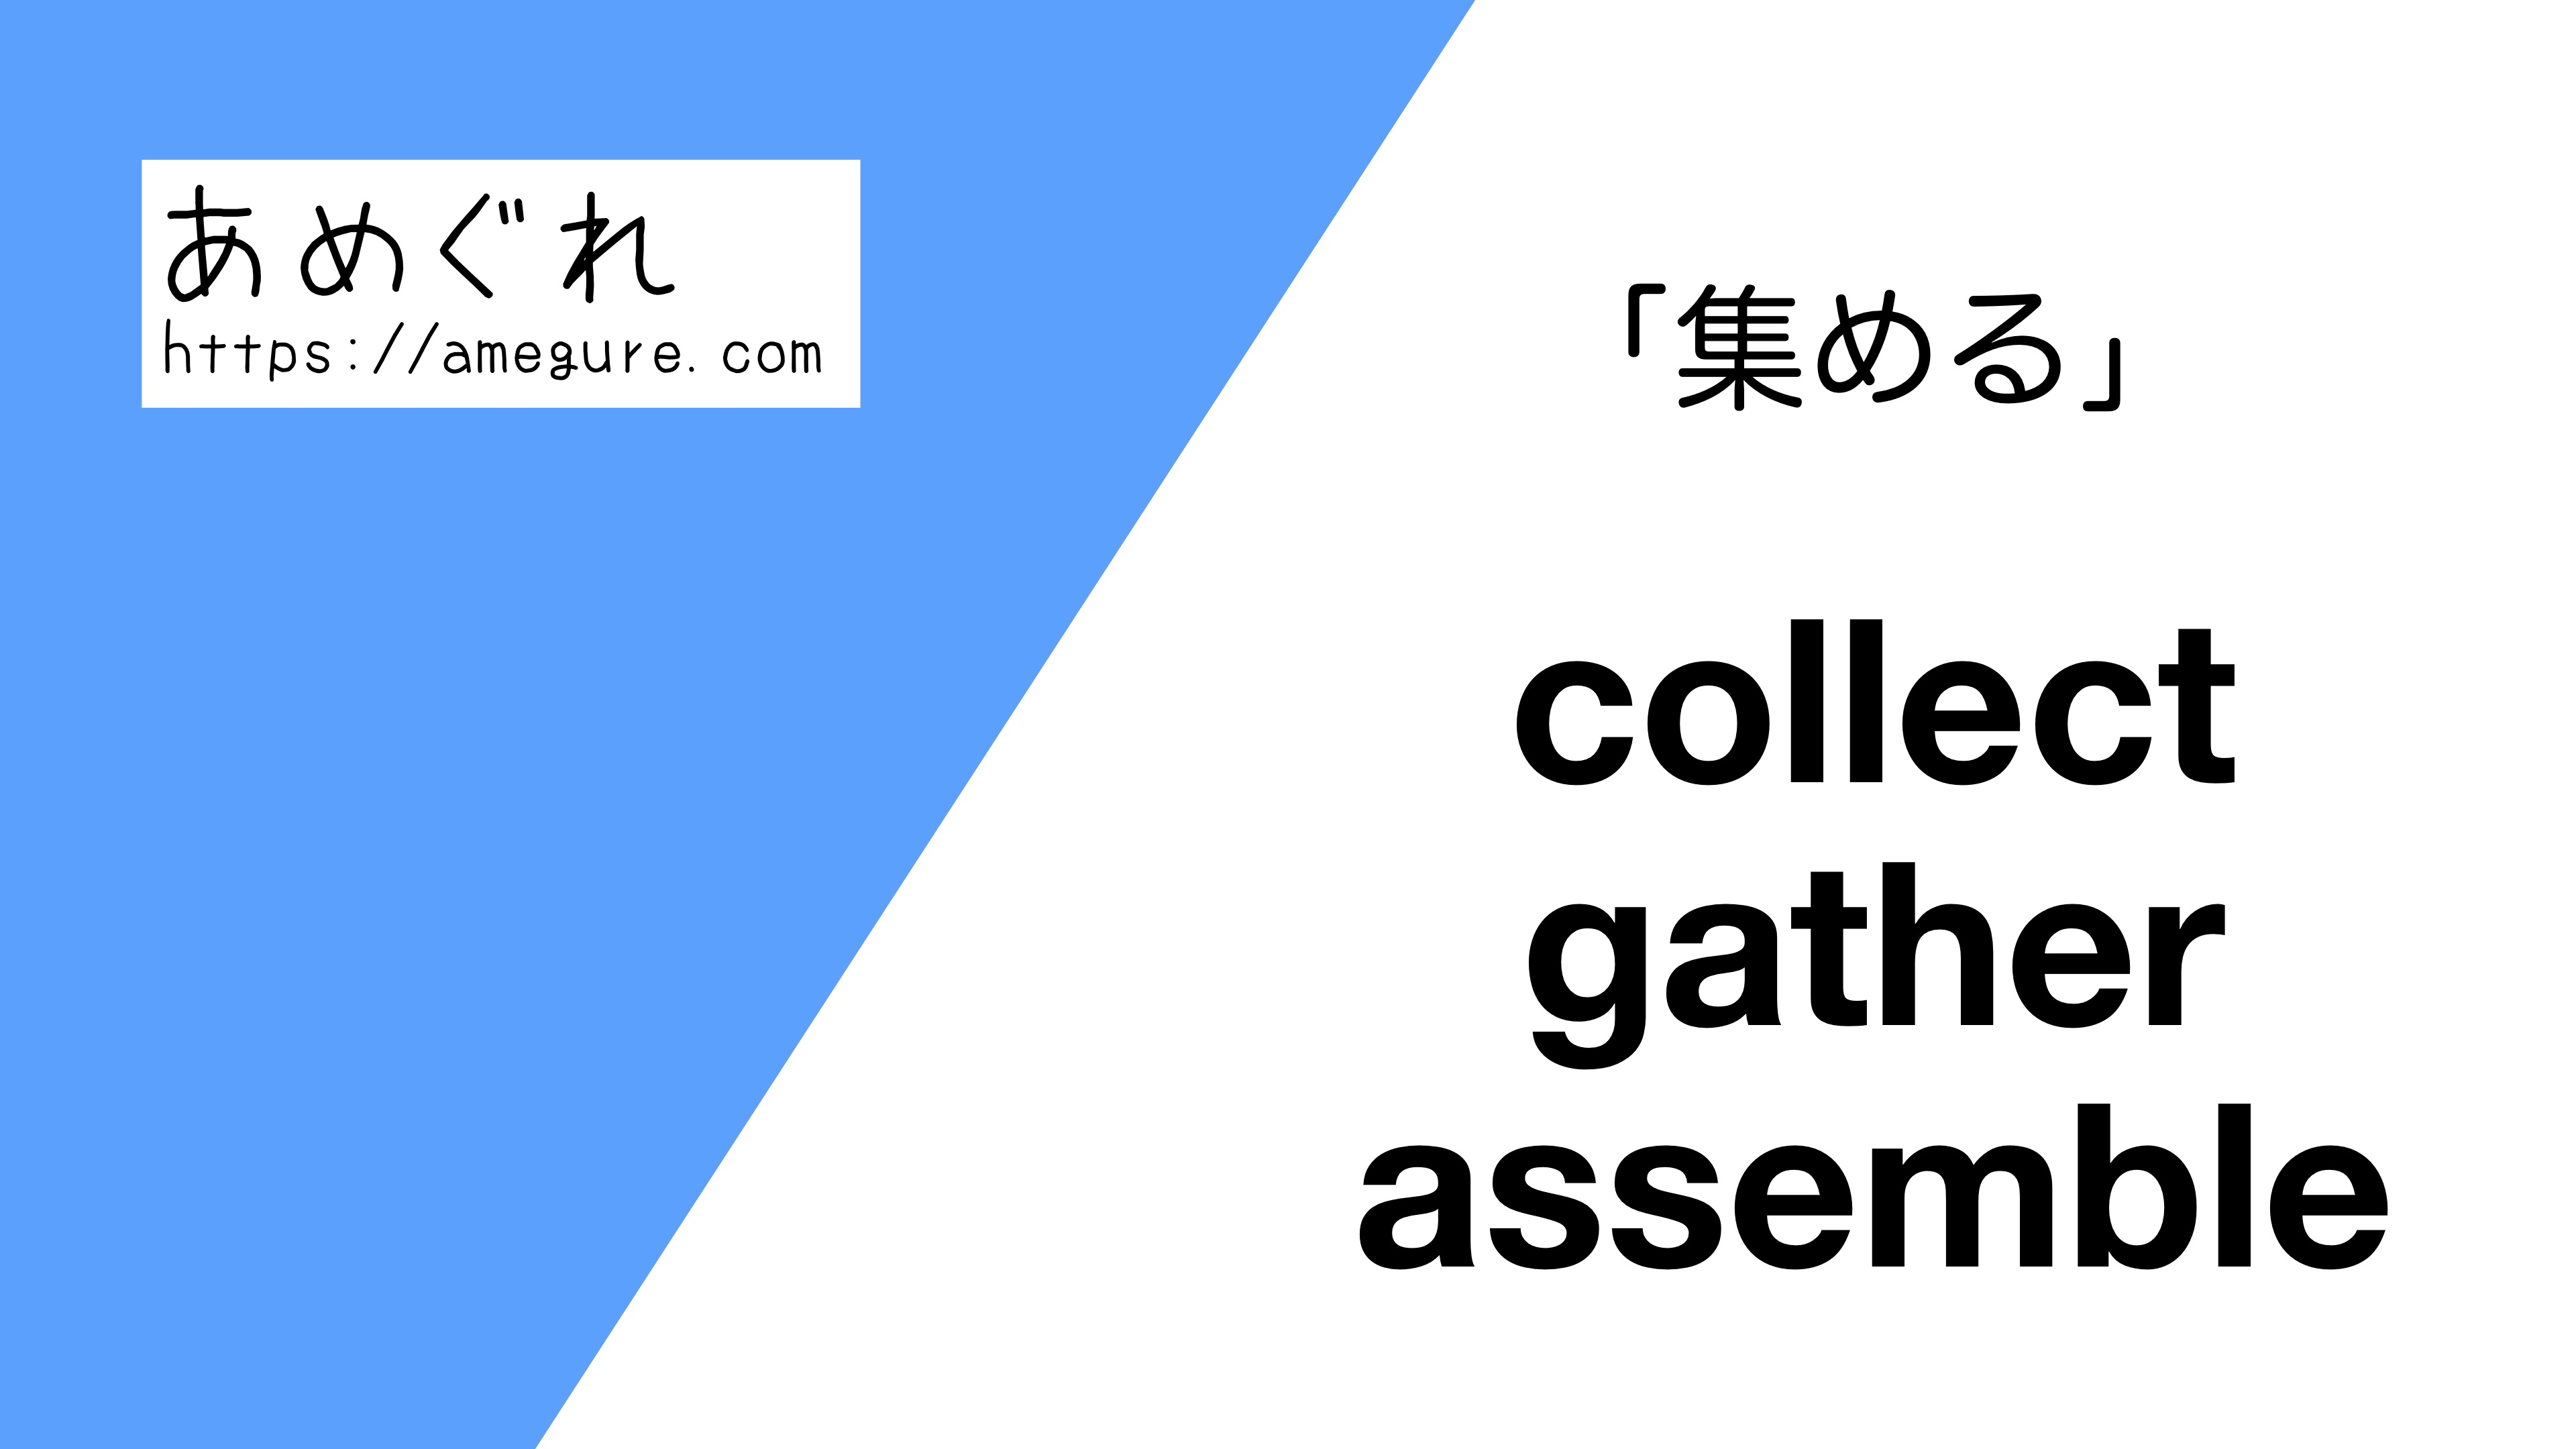 collect-gather-assemble違い